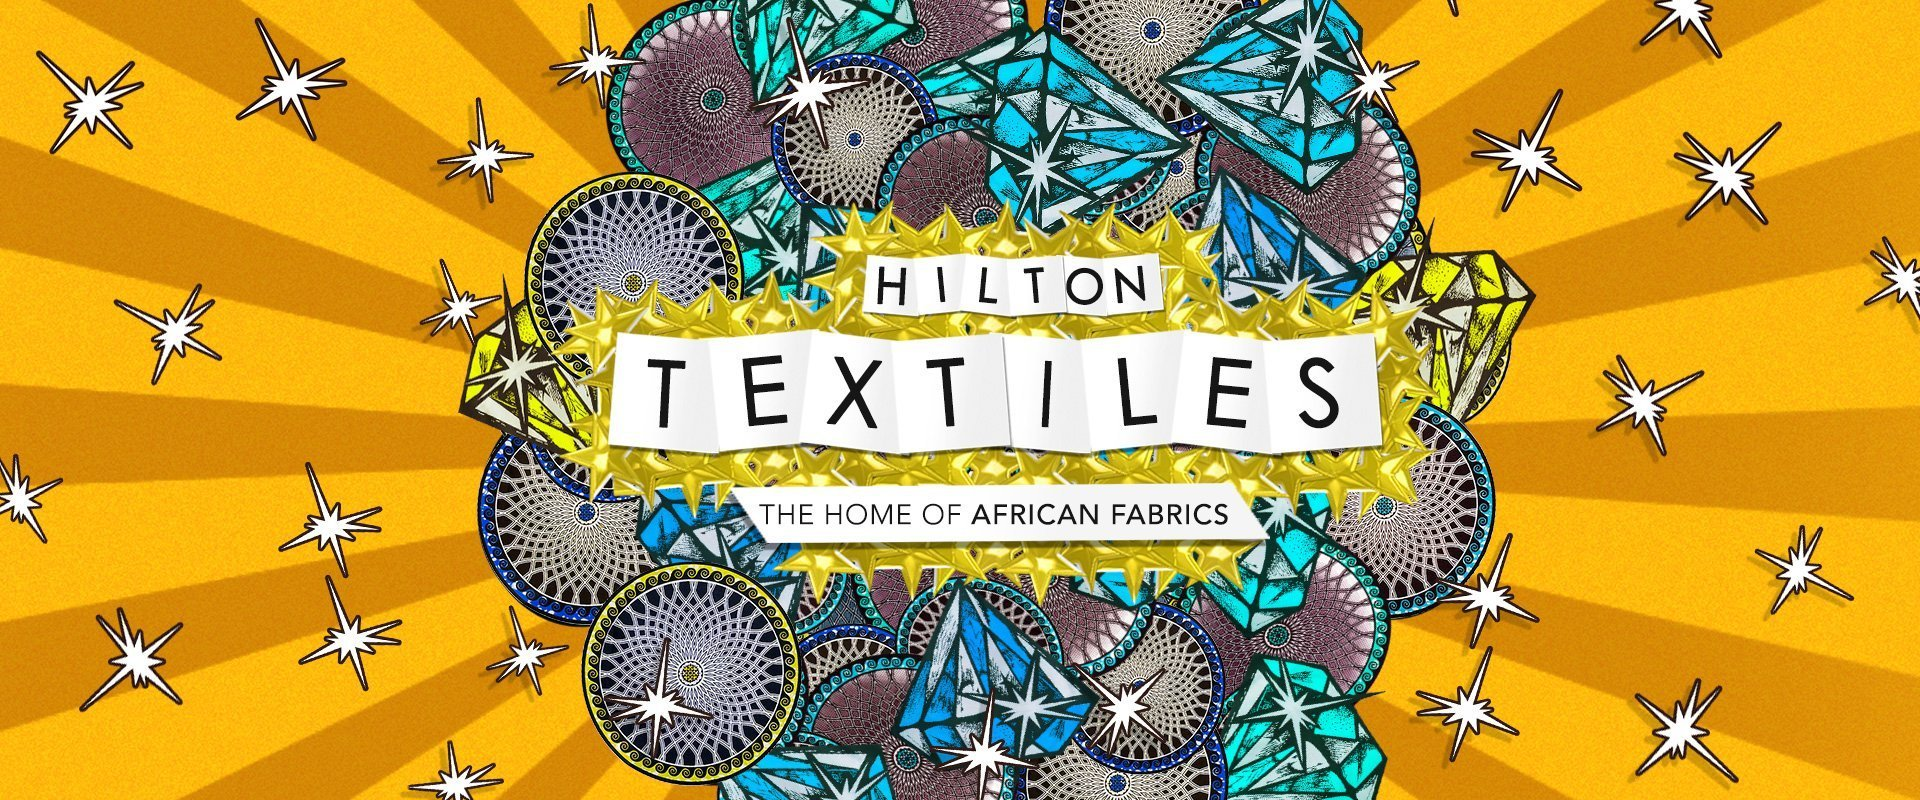 Hilton Textiles, the home of African Fabrics